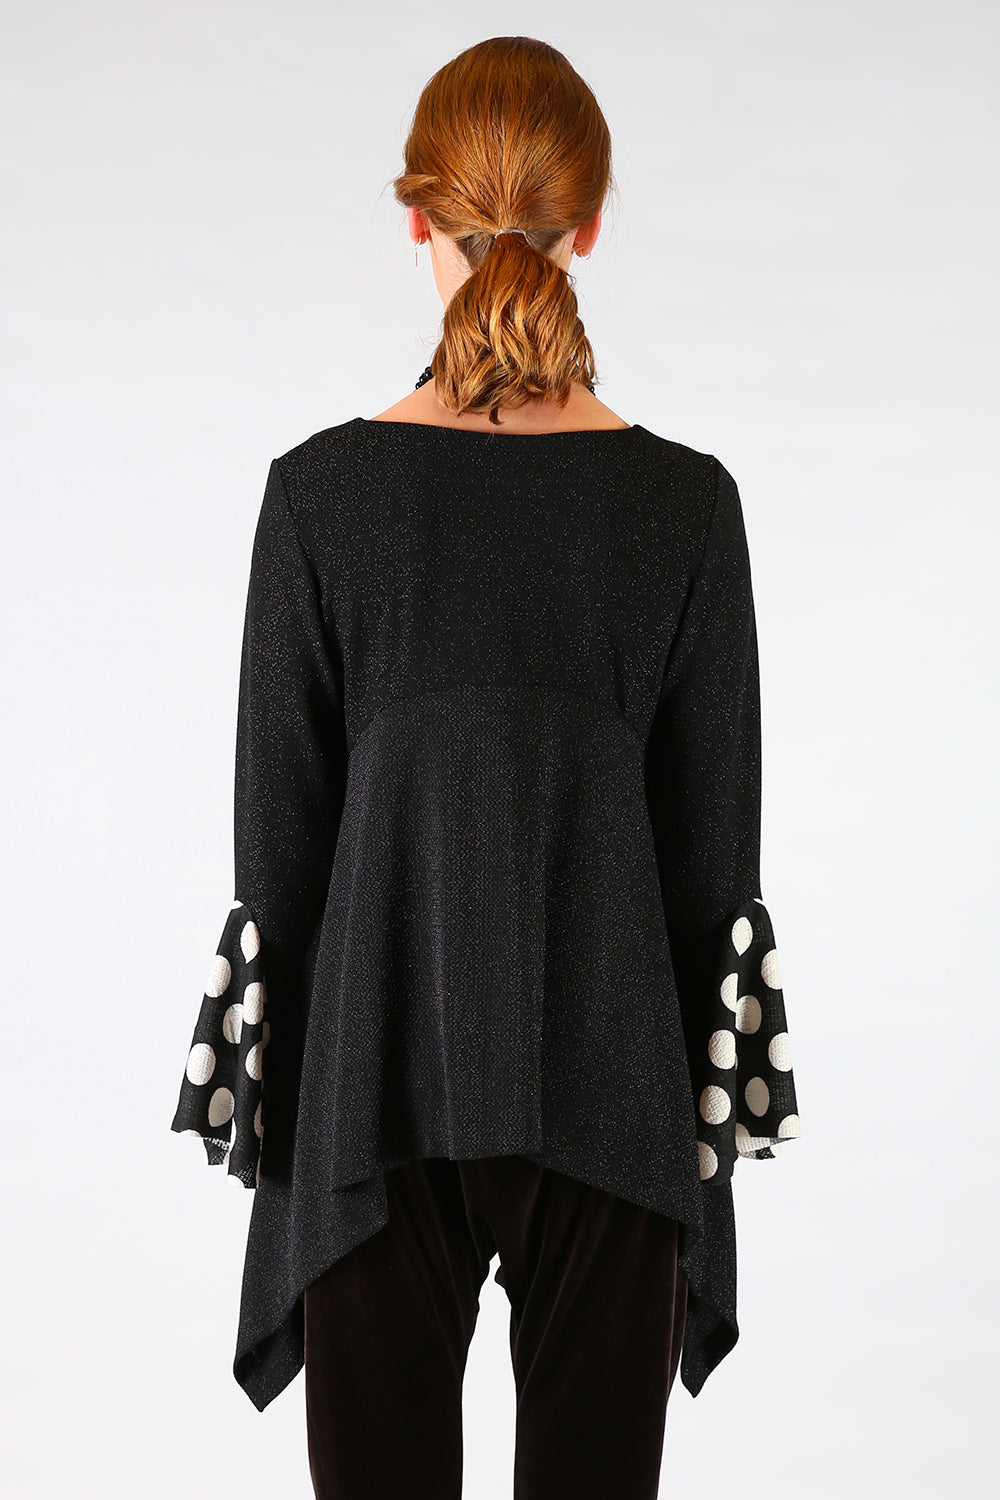 Brianne Top, Annah Stretton AW19, Statement Sleeve Black Knit Top, Shot on Model